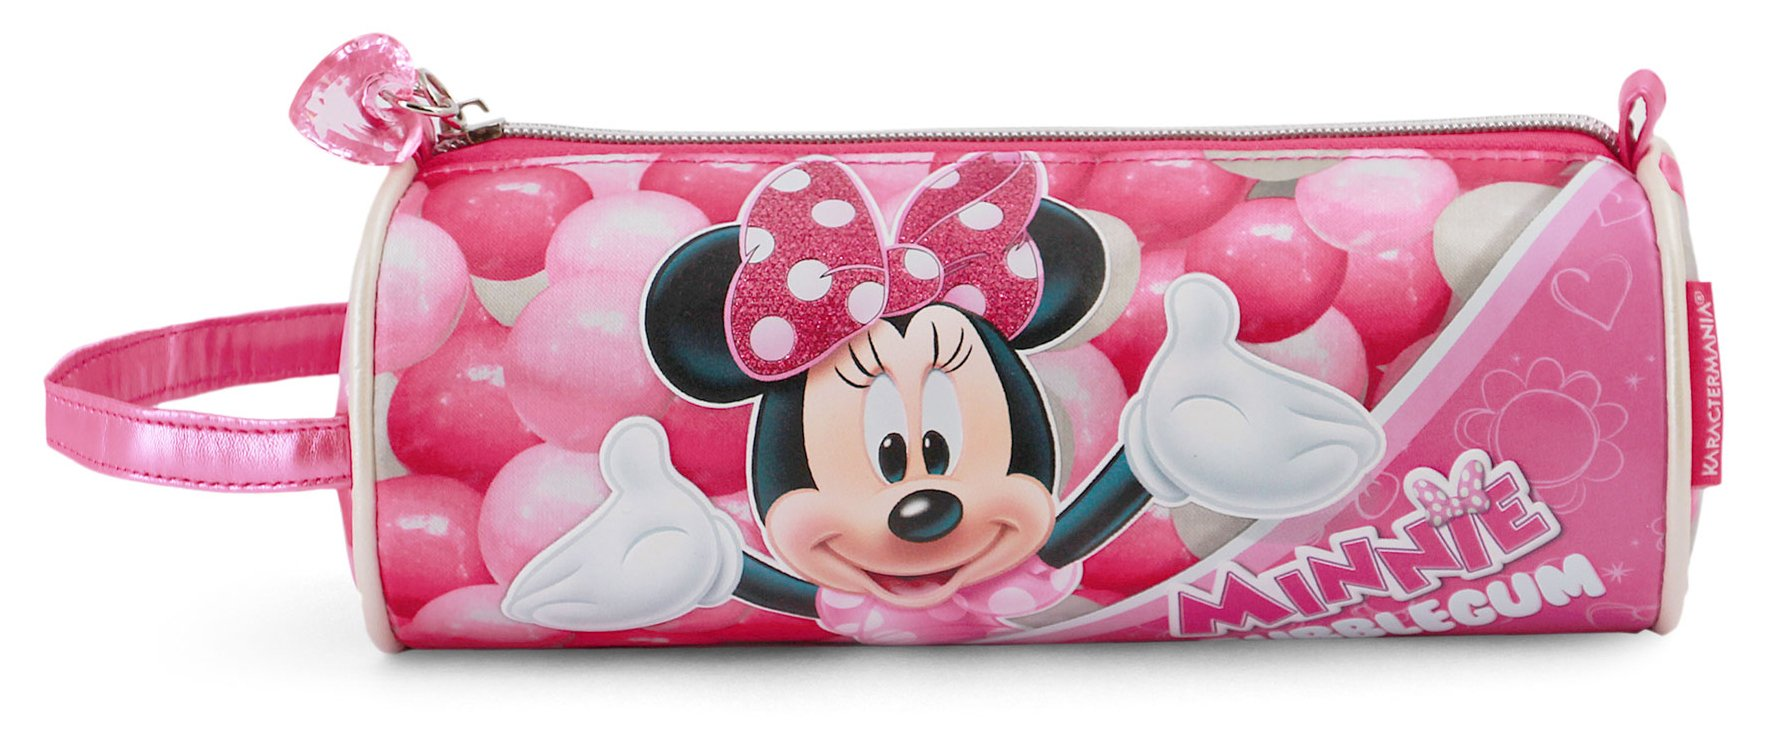 Karactermania 36231 Minnie Mouse Bubblegum Estuches, 22 cm, Rosa